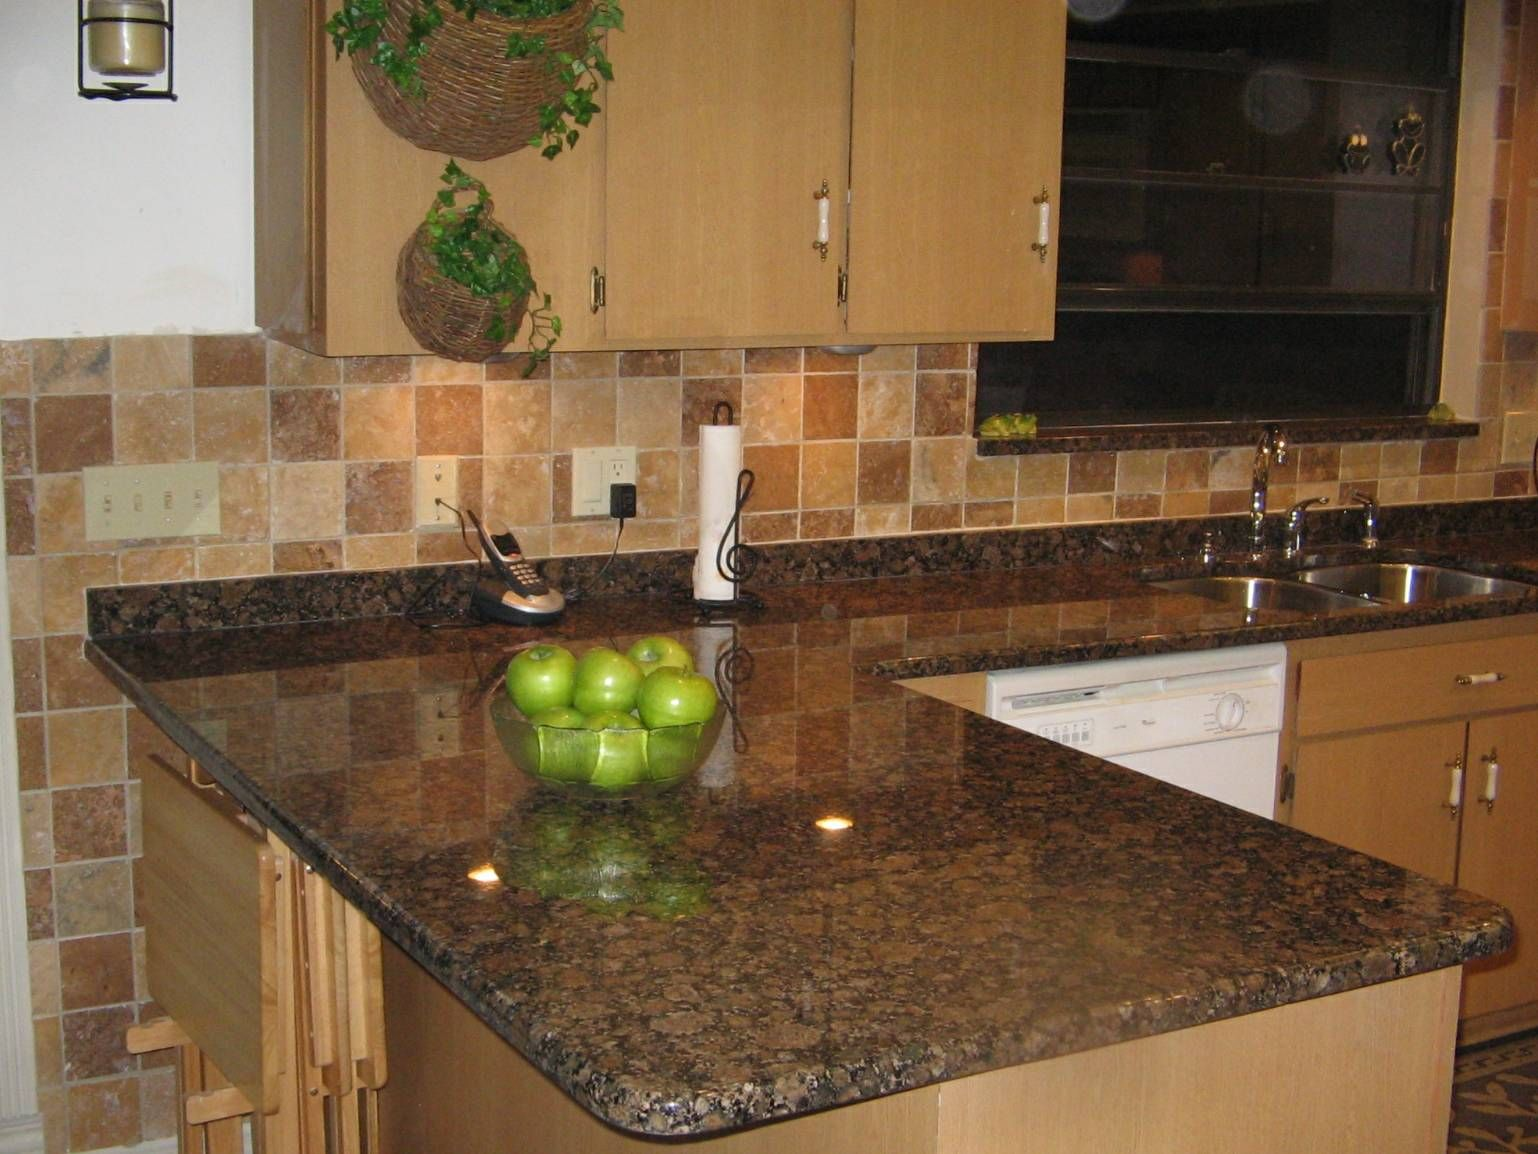 17 best ideas about tan brown granite on pinterest kitchen granite countertops granite countertops and granite countertops colors - Granite Countertops With Backsplash